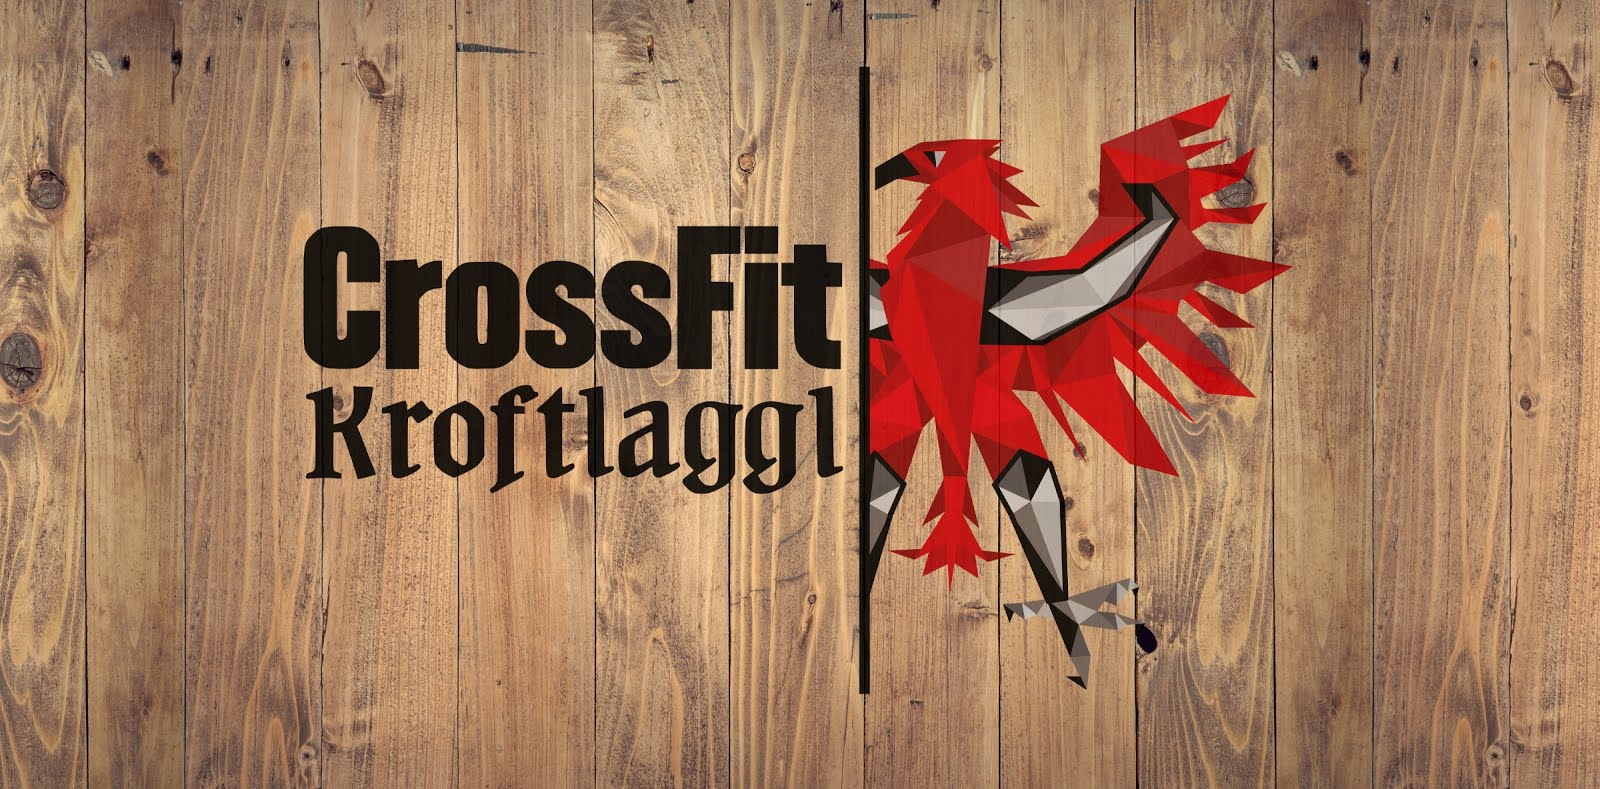 Crossfit